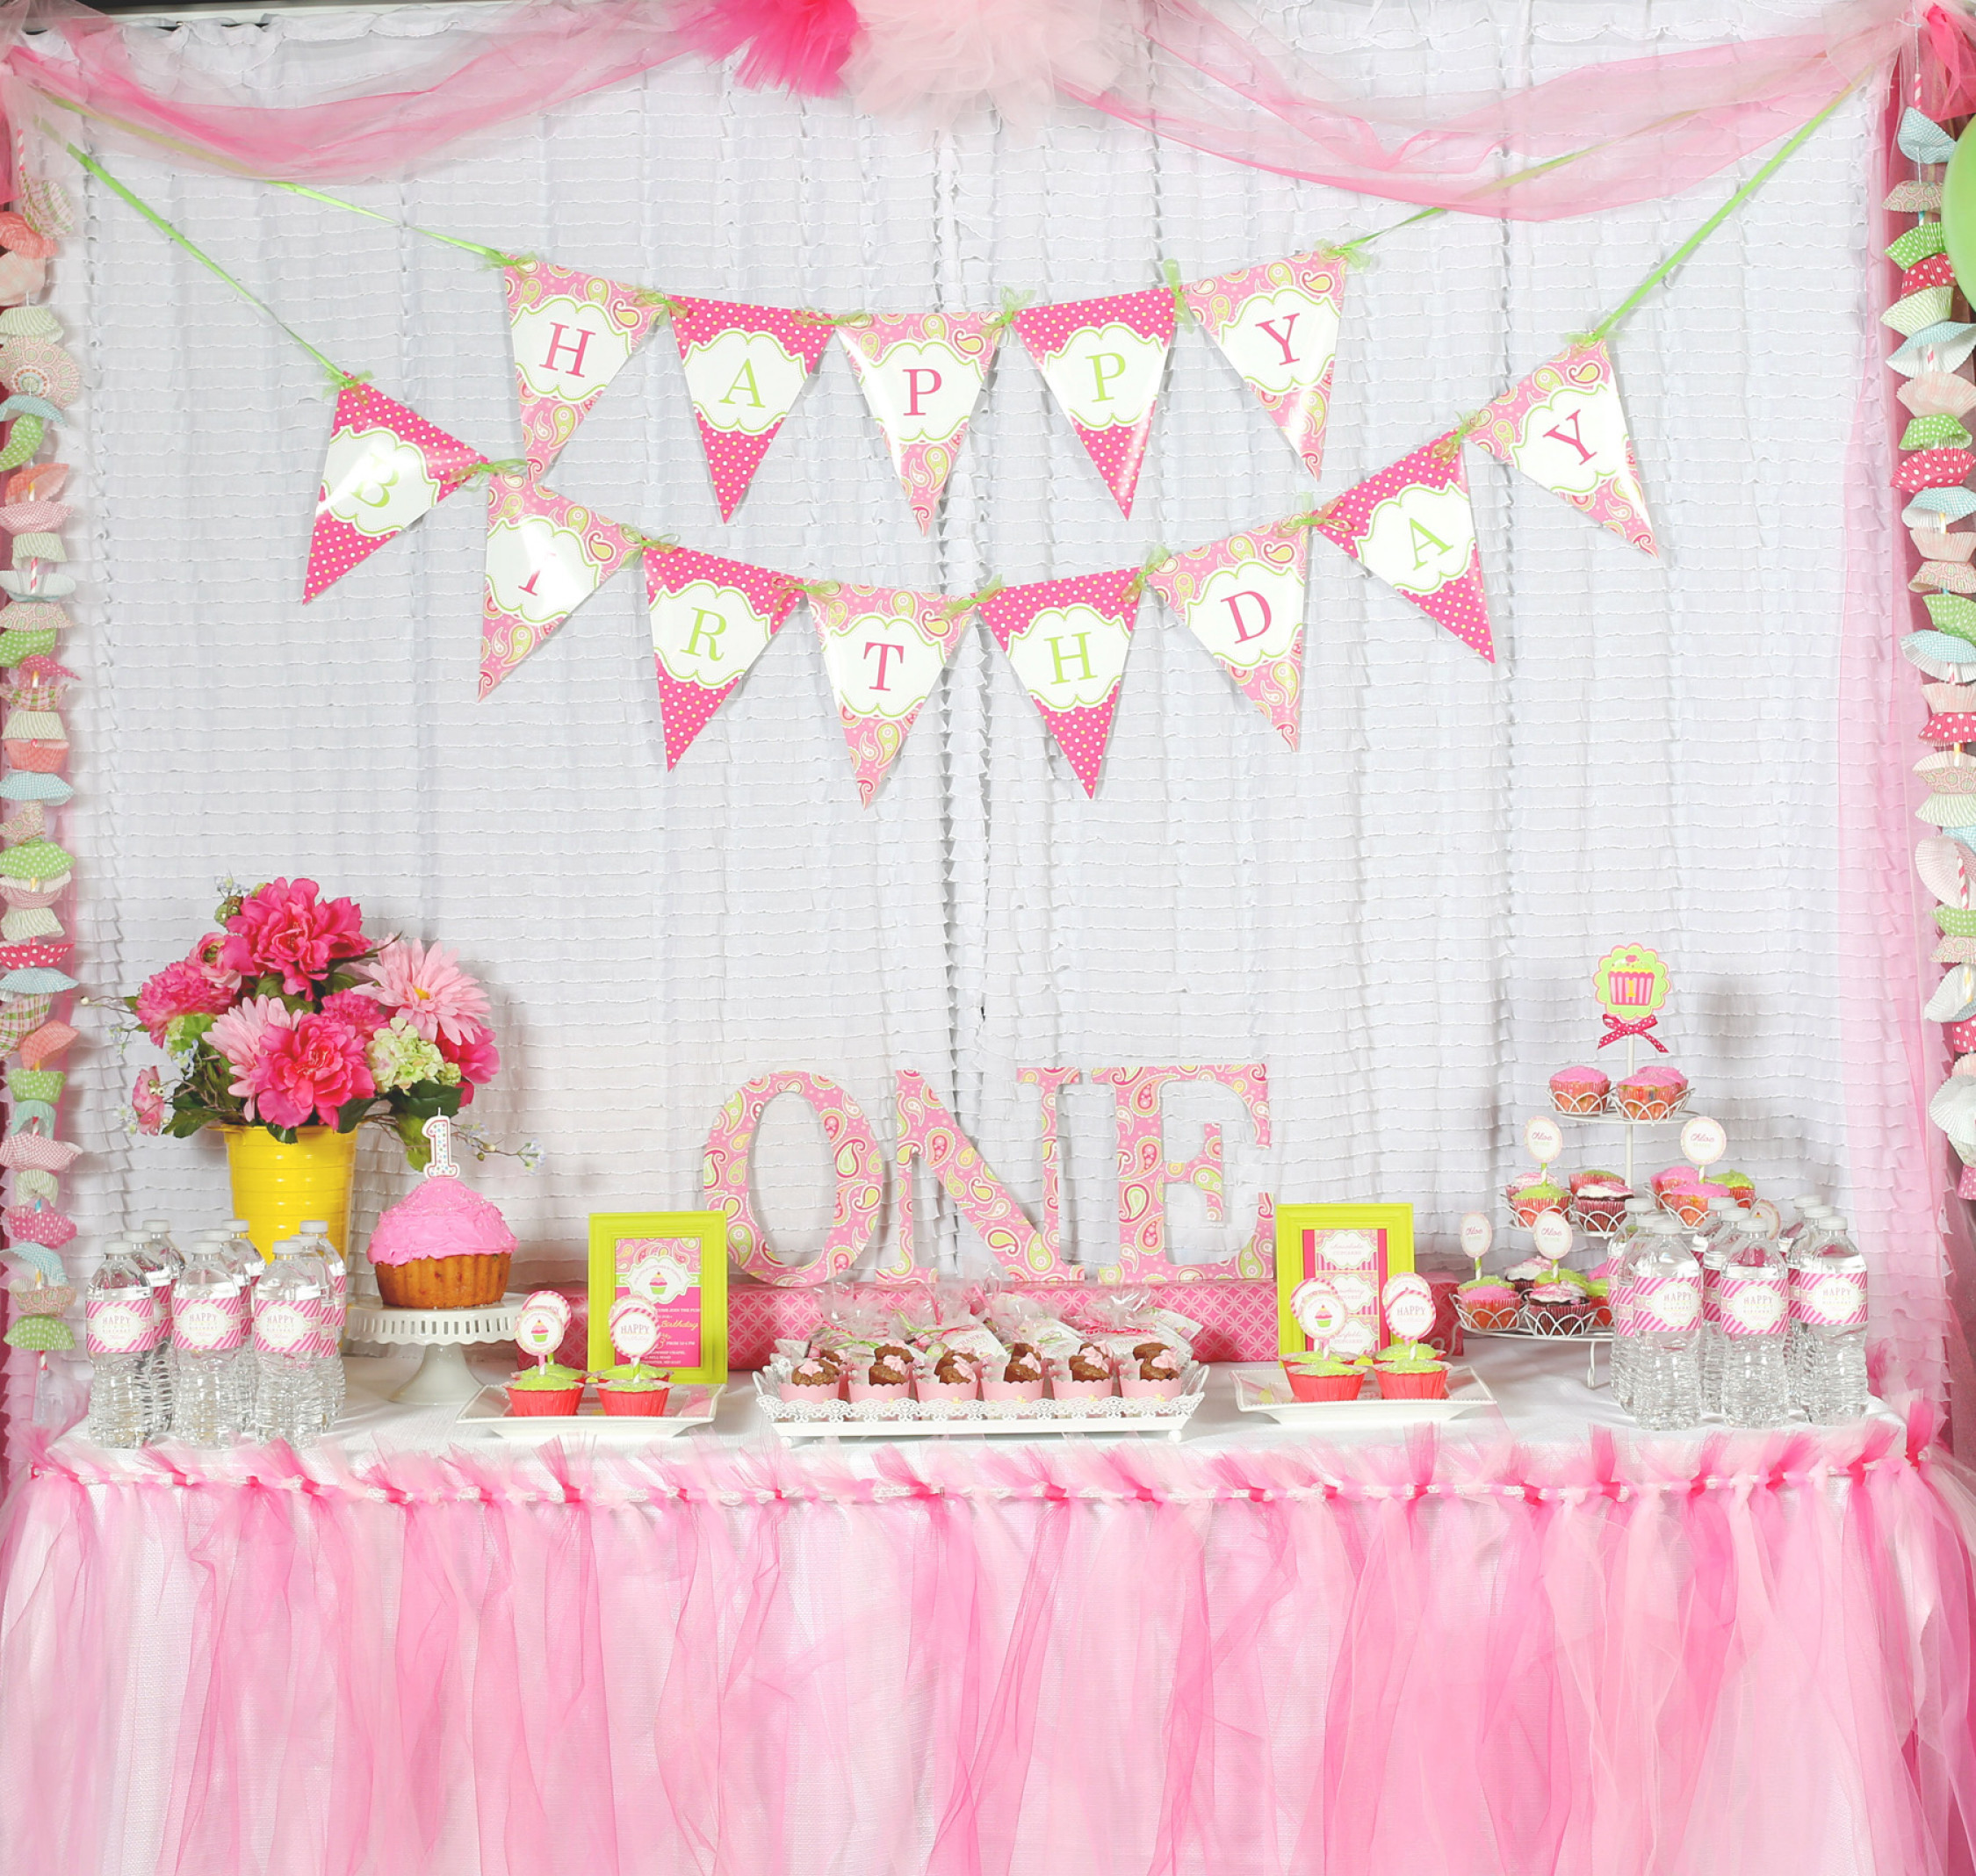 Baby First Party Ideas  A Cupcake Themed 1st Birthday party with Paisley and Polka